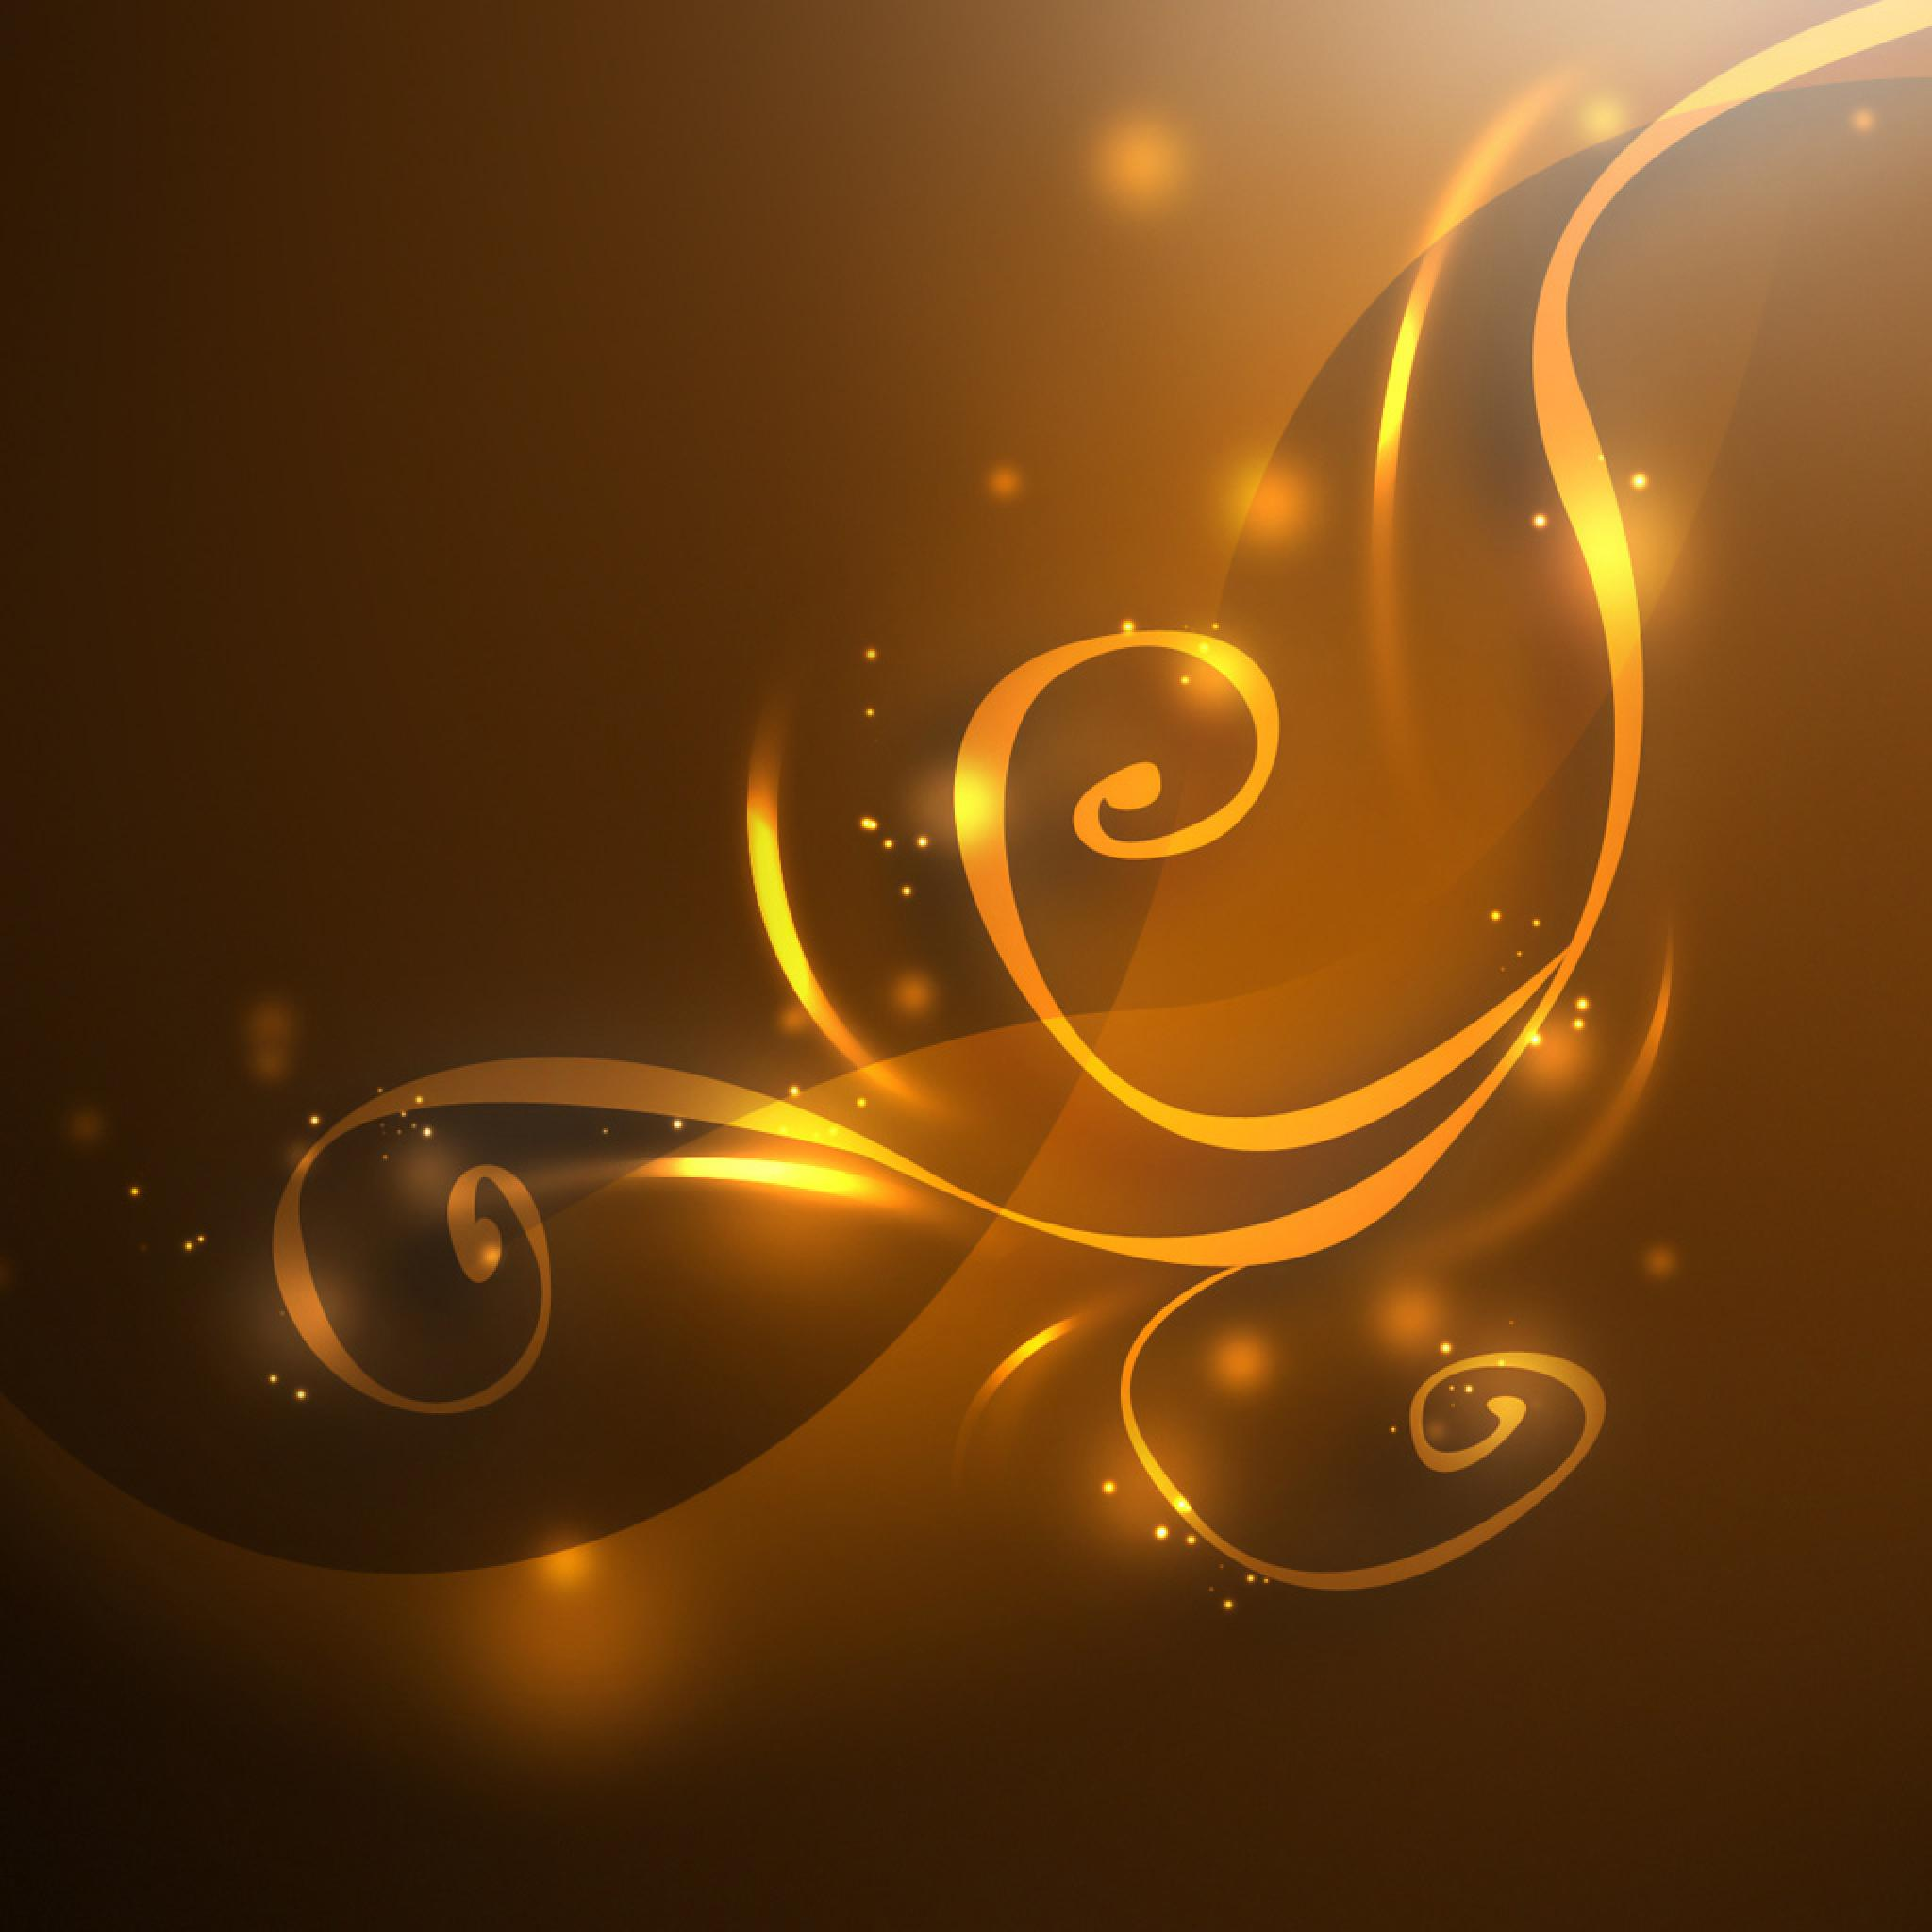 Cute Initial Wallpaper Vector Golden Gold Swirls Background Ipad Iphone Hd